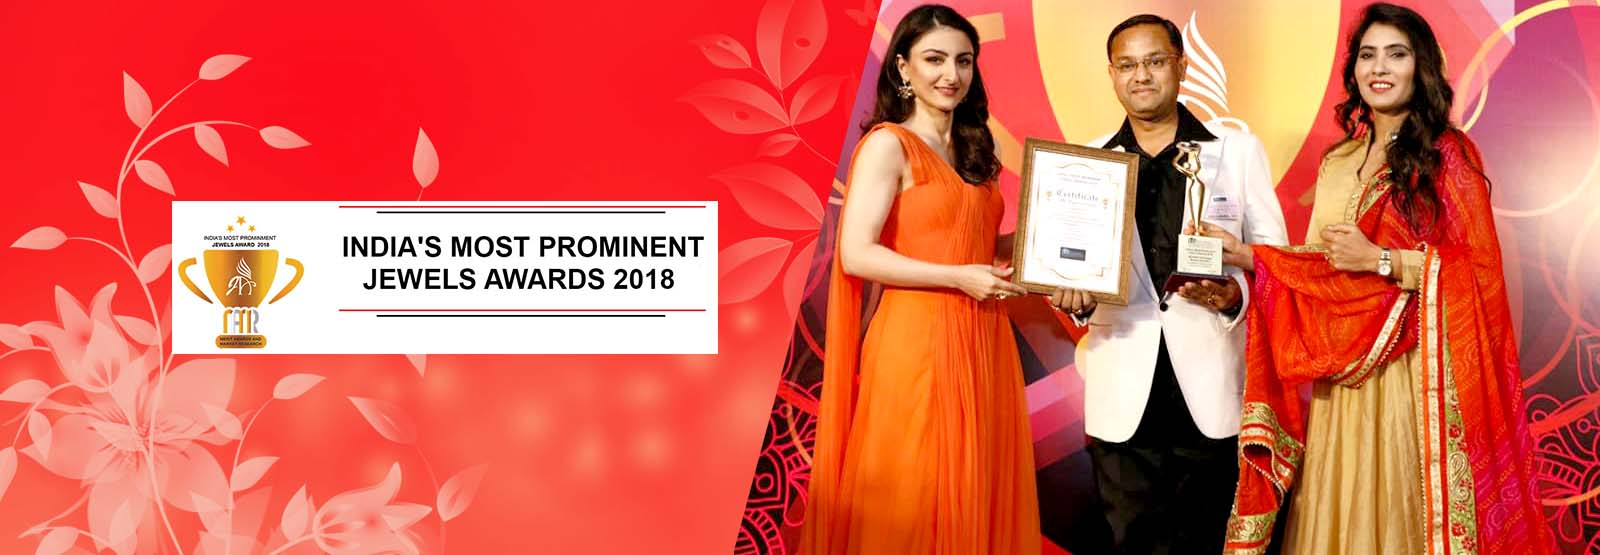 Indias Most Prominet Award 2018